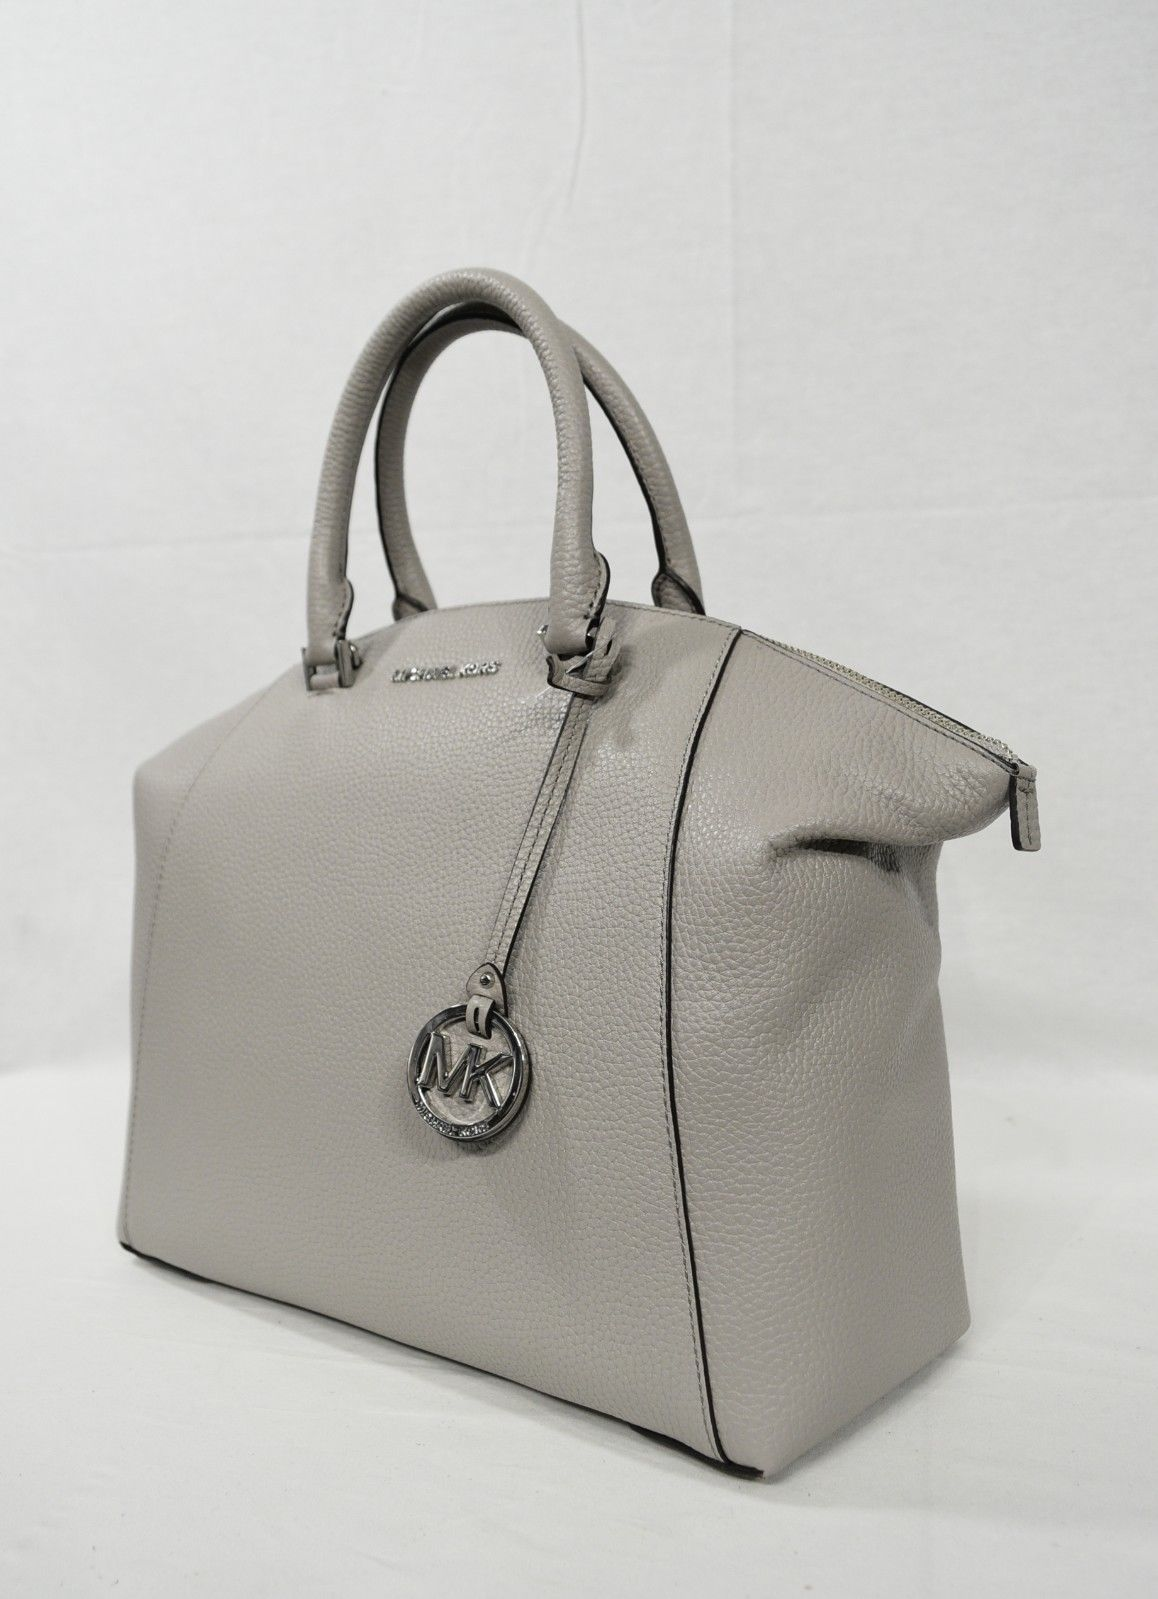 6c88361c4325 S l1600. S l1600. Previous. Michael Kors Riley Large Satchel/Shoulder Bag  in Pearl Grey with Silver Hardware